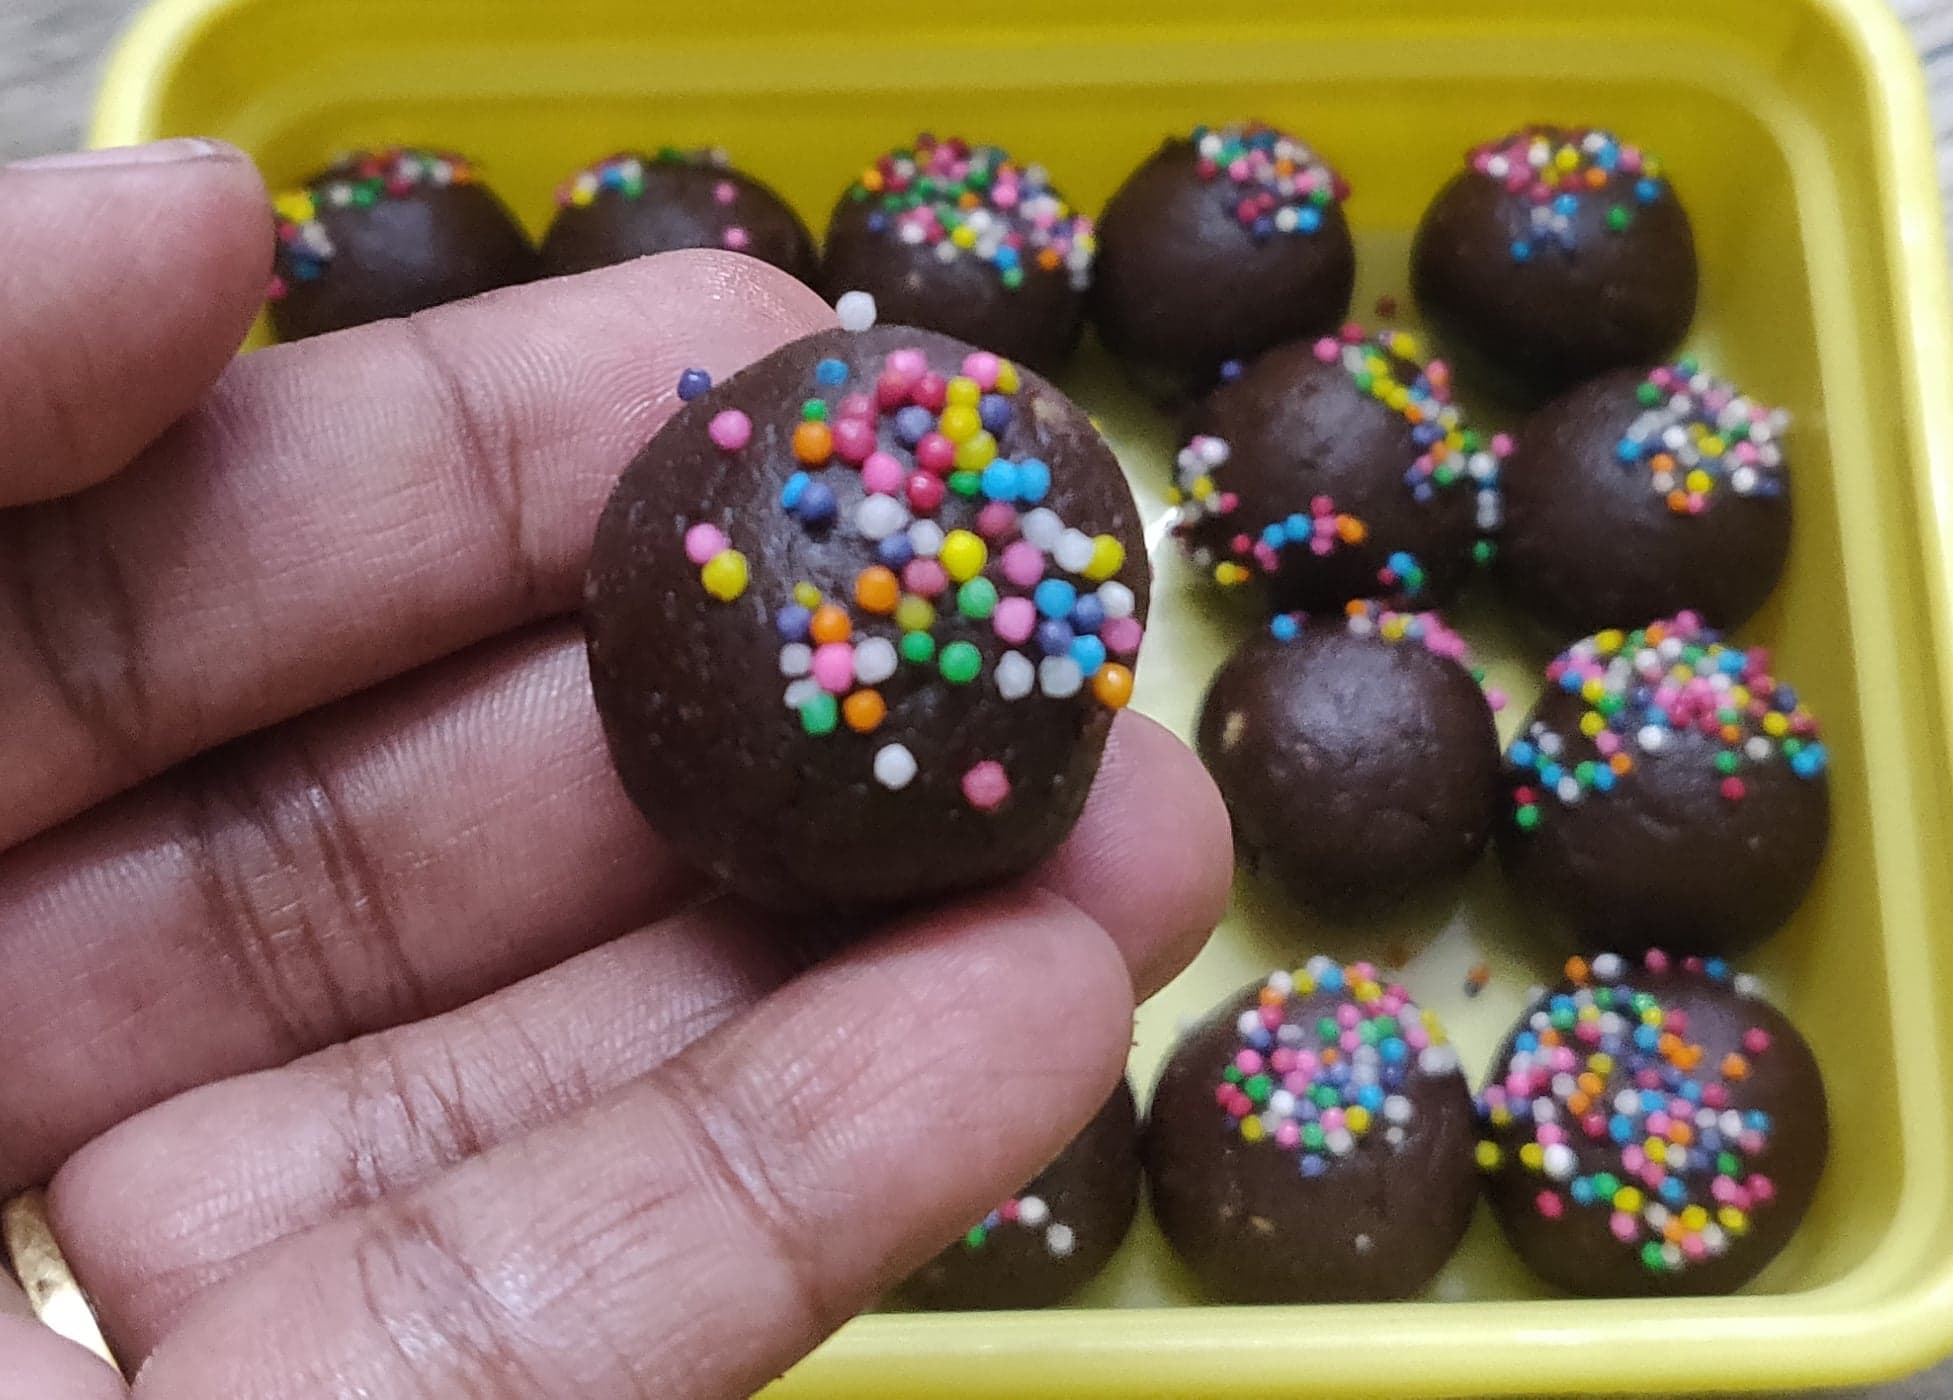 Chocolate_biscuit_balls - 118897004_4915977458428277_5243070736758351341_n